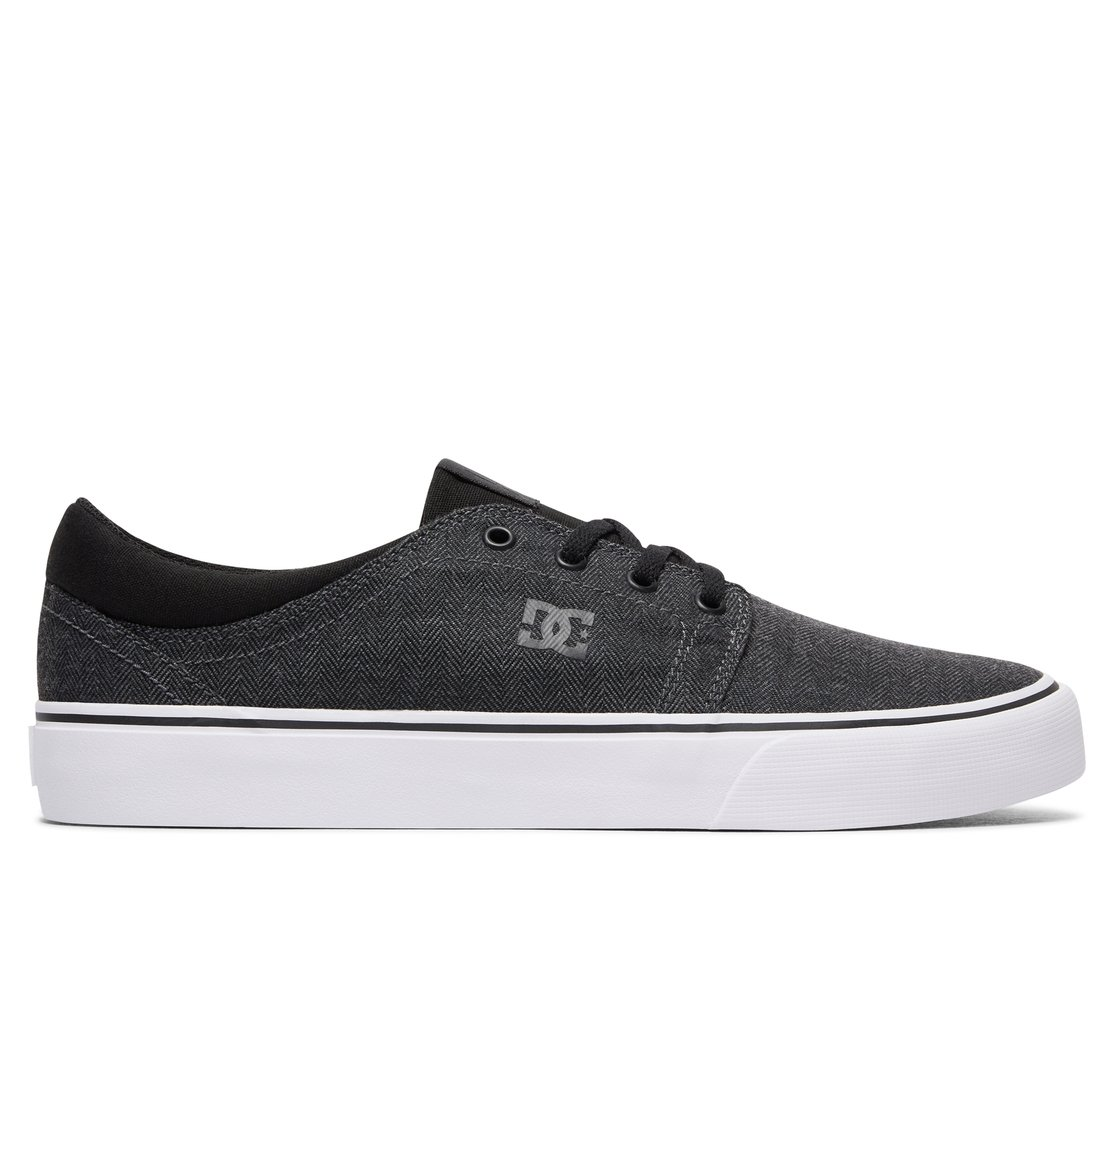 Shoes Womens Dc Shoes Trase Tx Se - Low Shoes - Women - Us 11 - Black Dark Denim/White Us 11 / Uk 9 / Eu 43